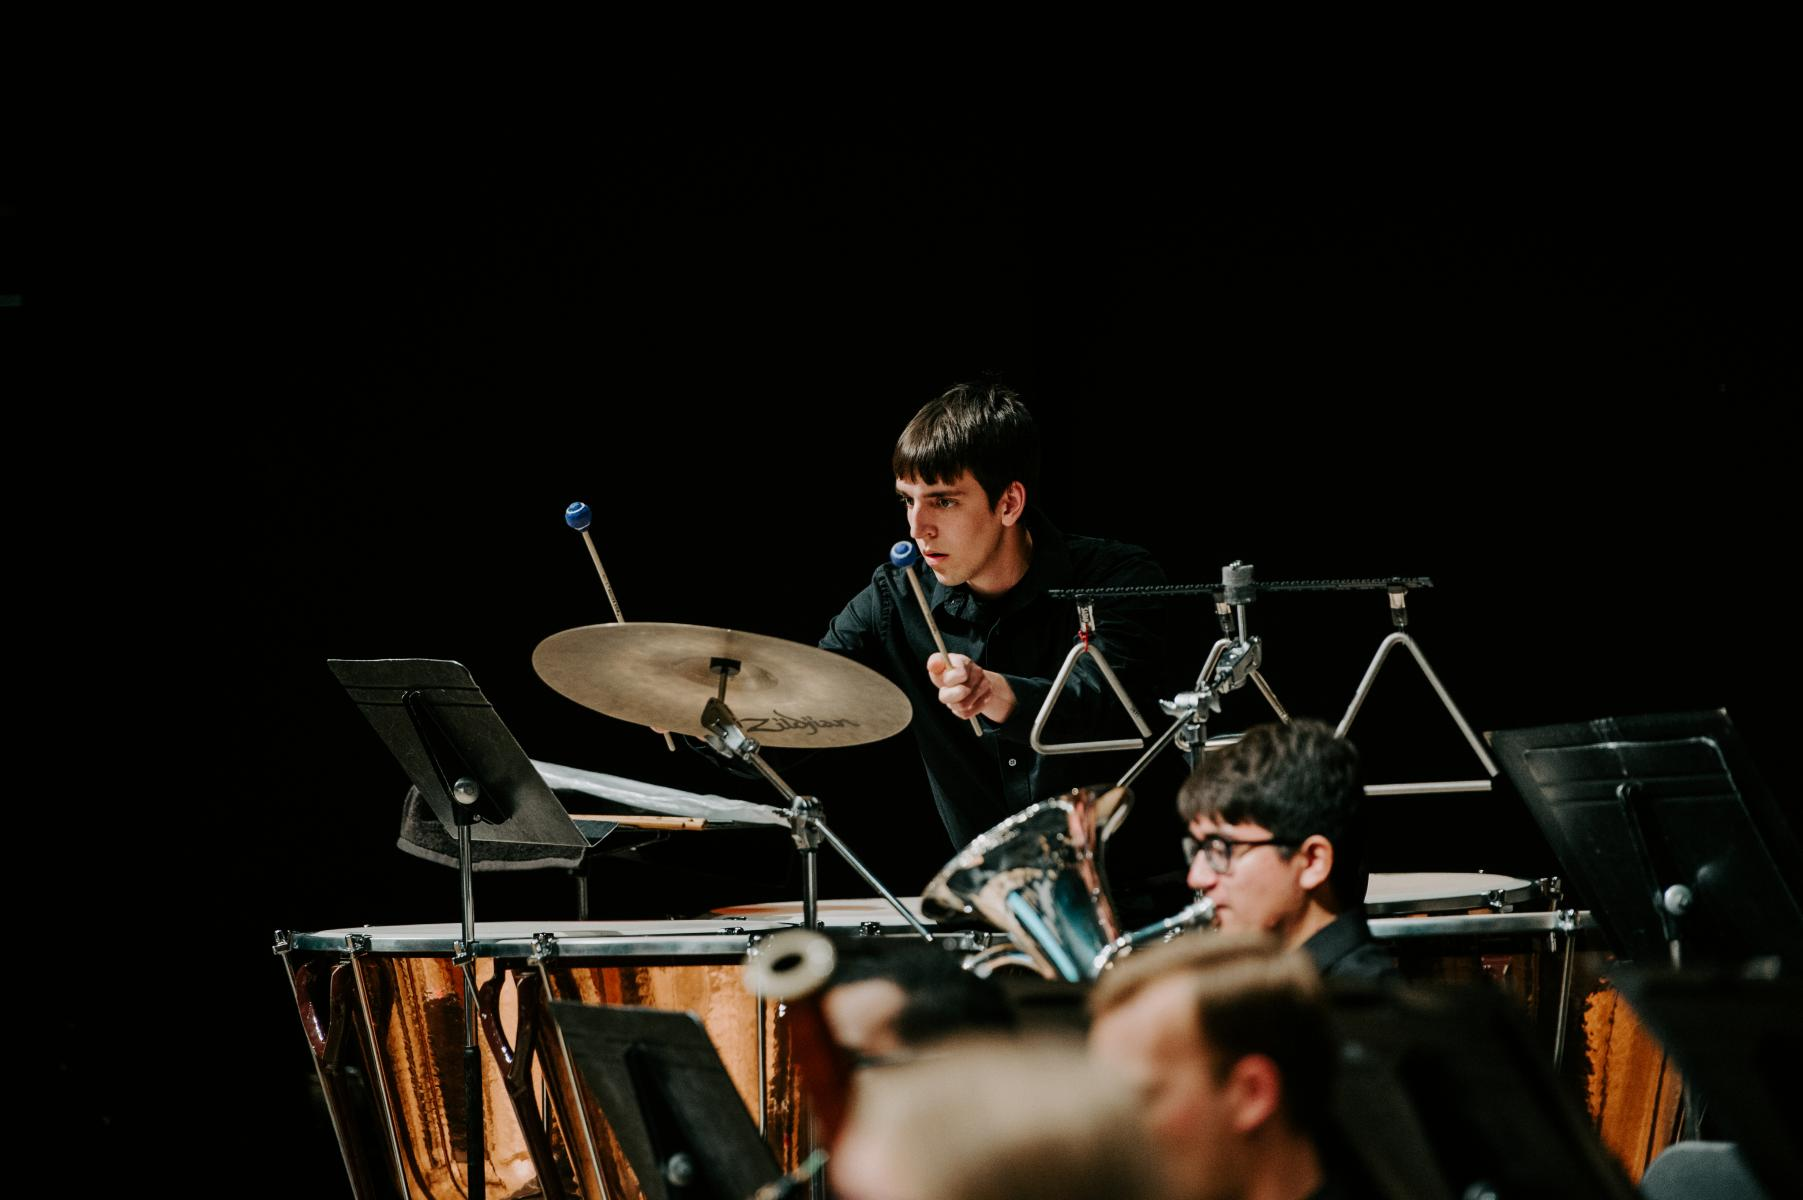 Photo of Wind Ensemble percussion player.